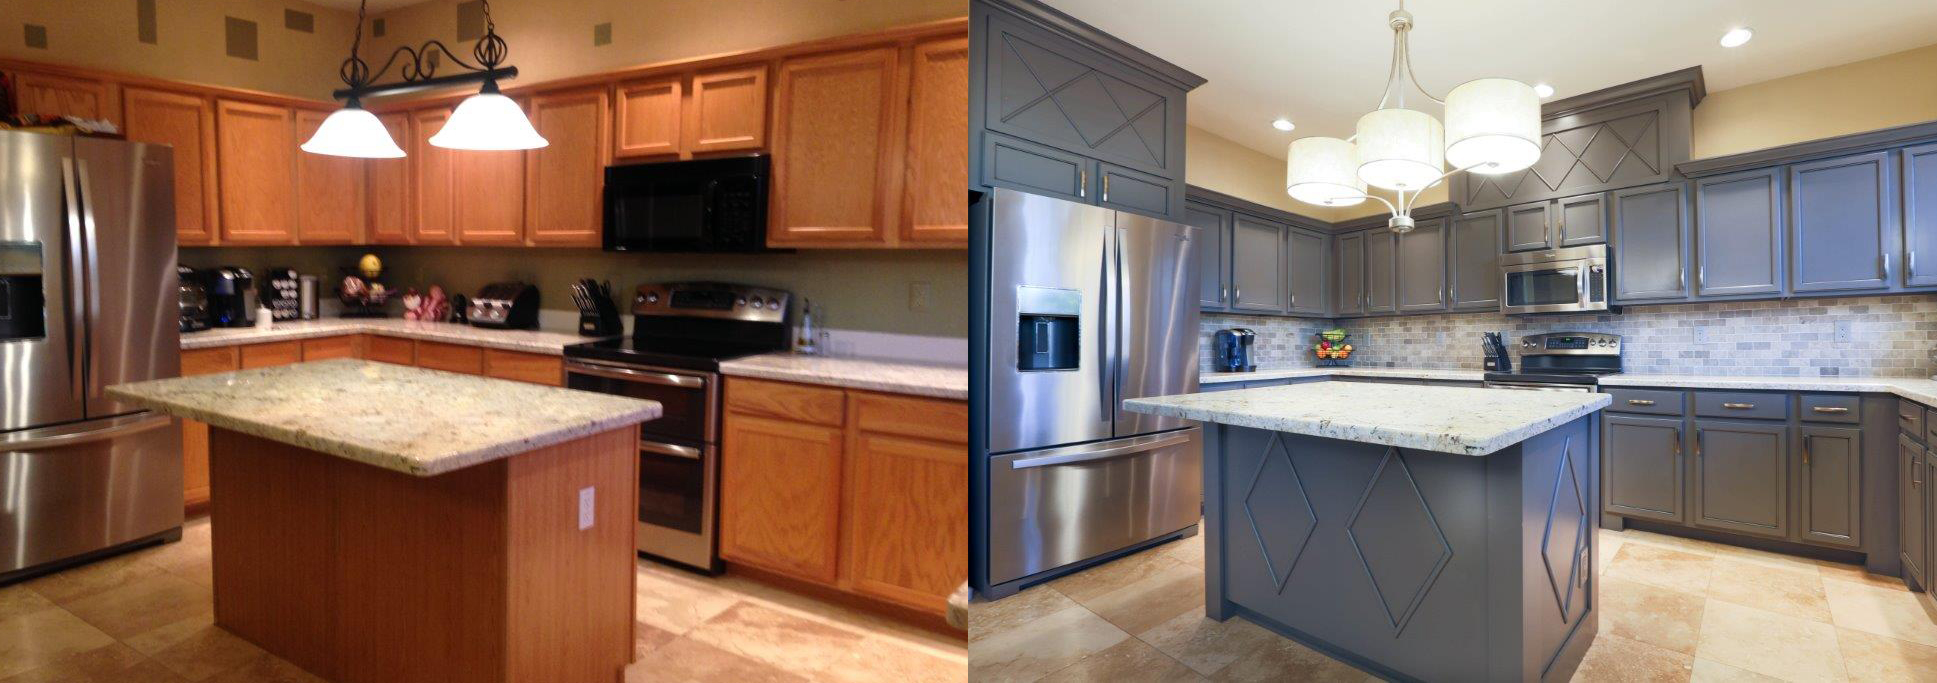 Cabinet refinishing phoenix az tempe arizona kitchens for Refinishing kitchen cabinets before and after